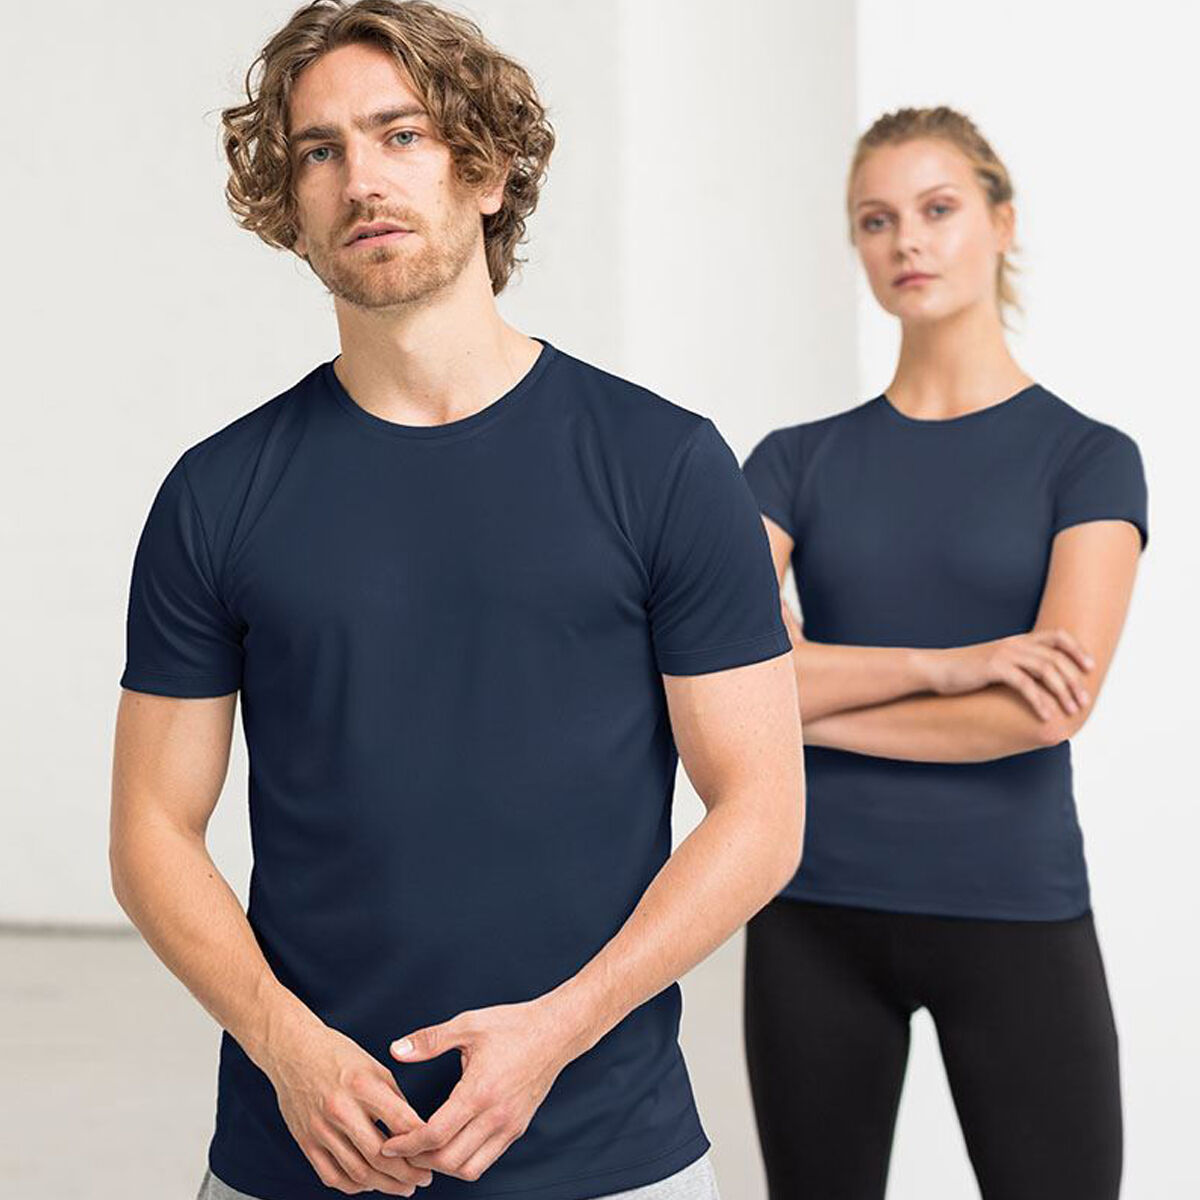 Ecologie Brand Recycled Performance Shirt in blue